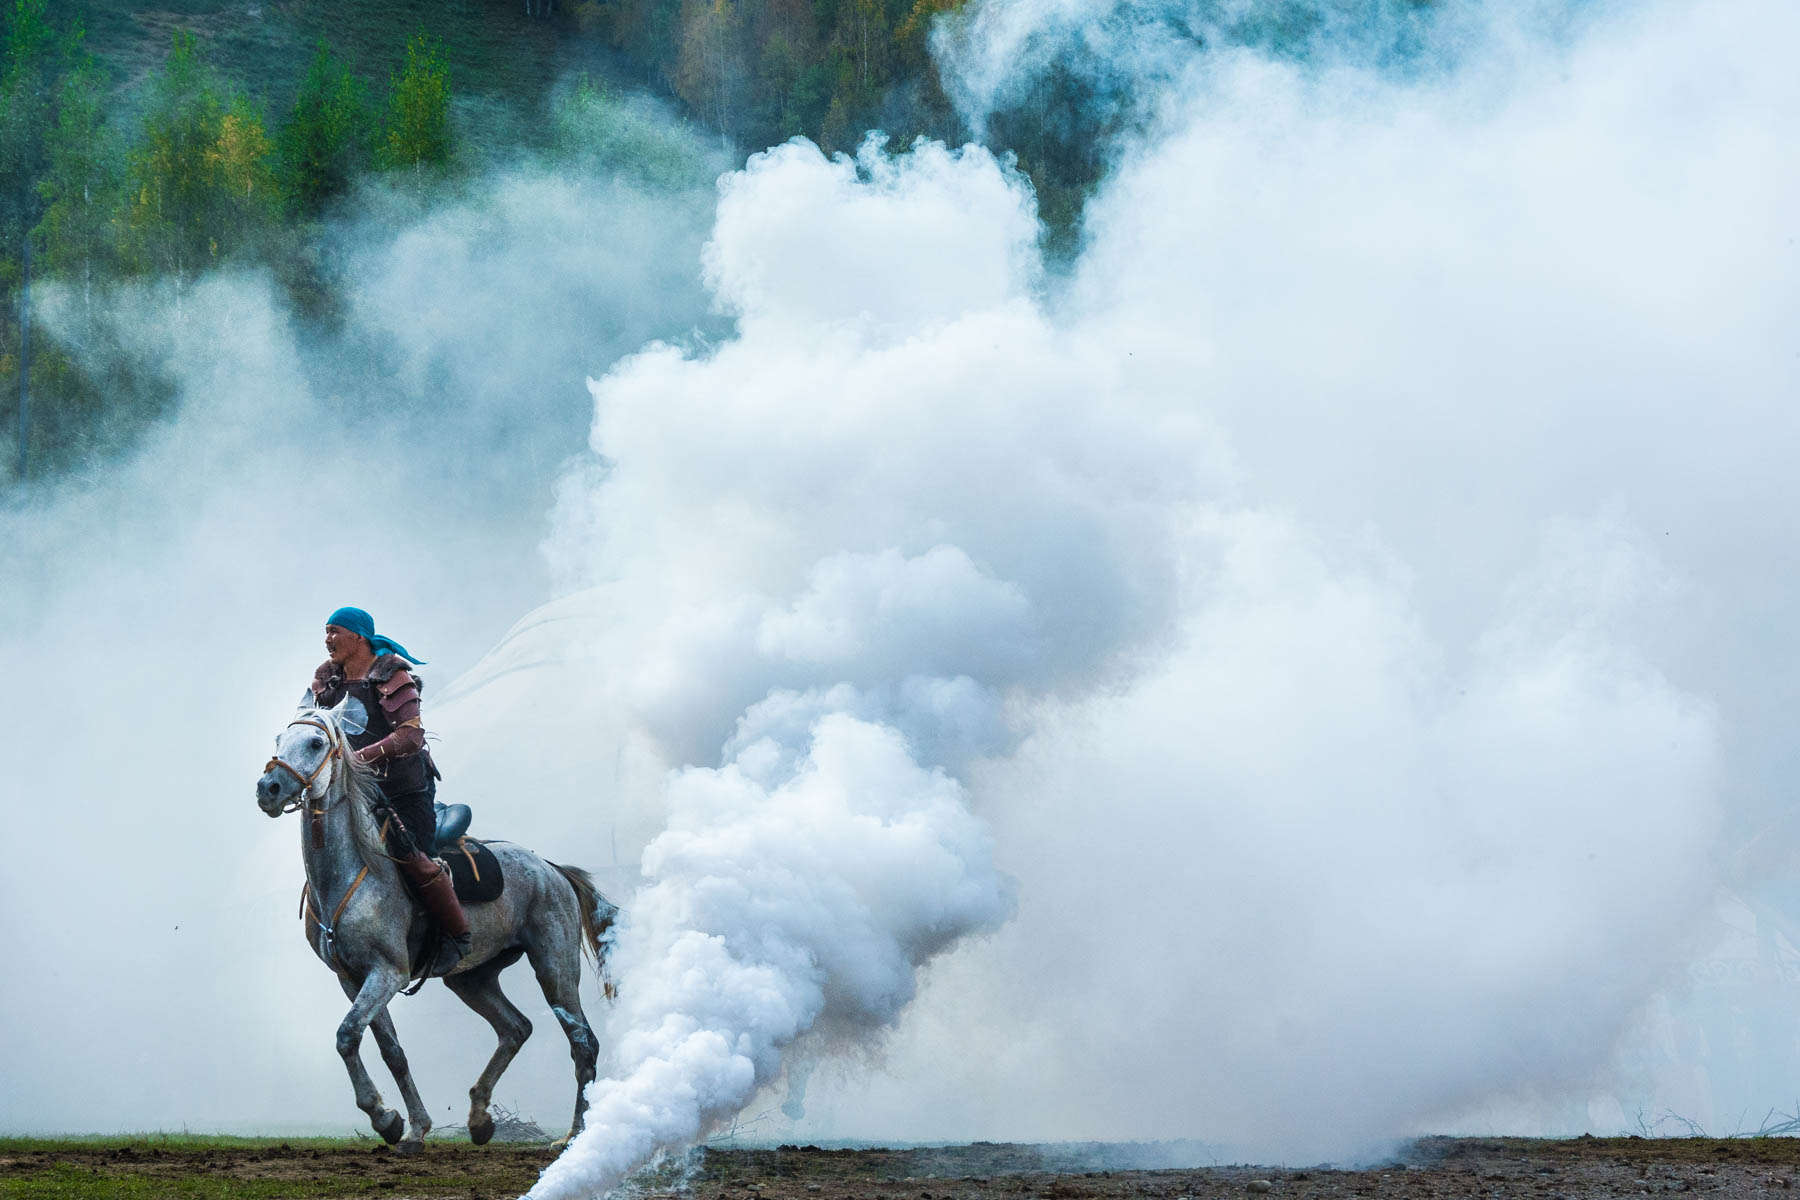 Smoke effects at the 2016 World Nomad Games - Lost With Purpose